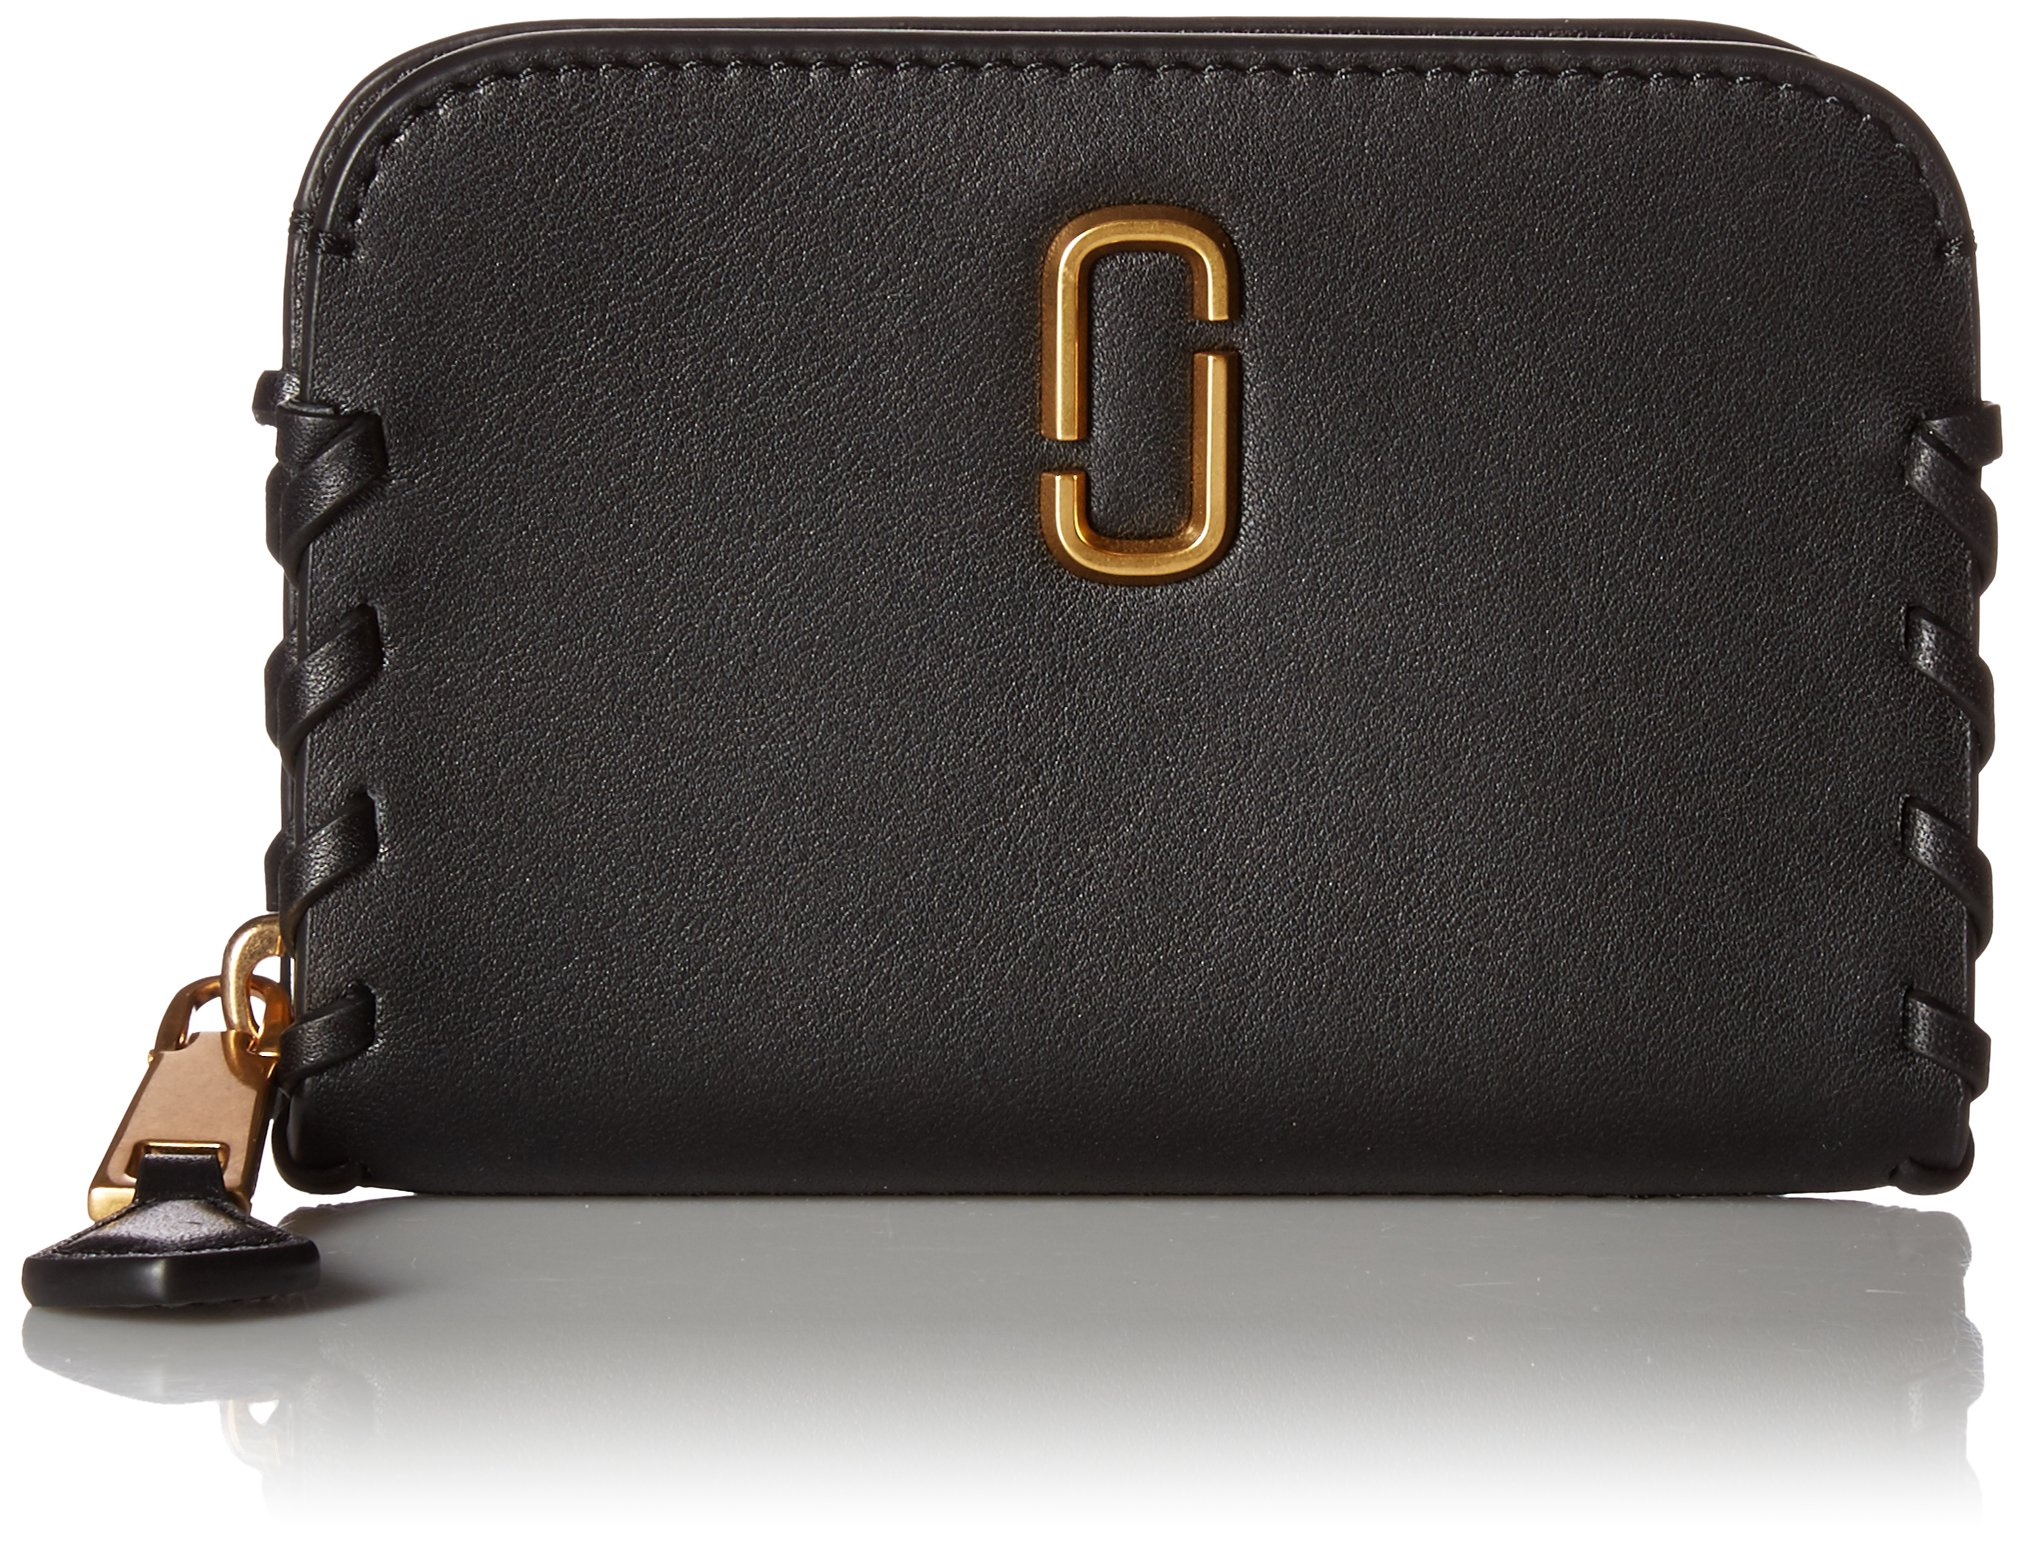 Noho Zip Card Case Credit Card Holder, BLACK, One Size by Marc Jacobs